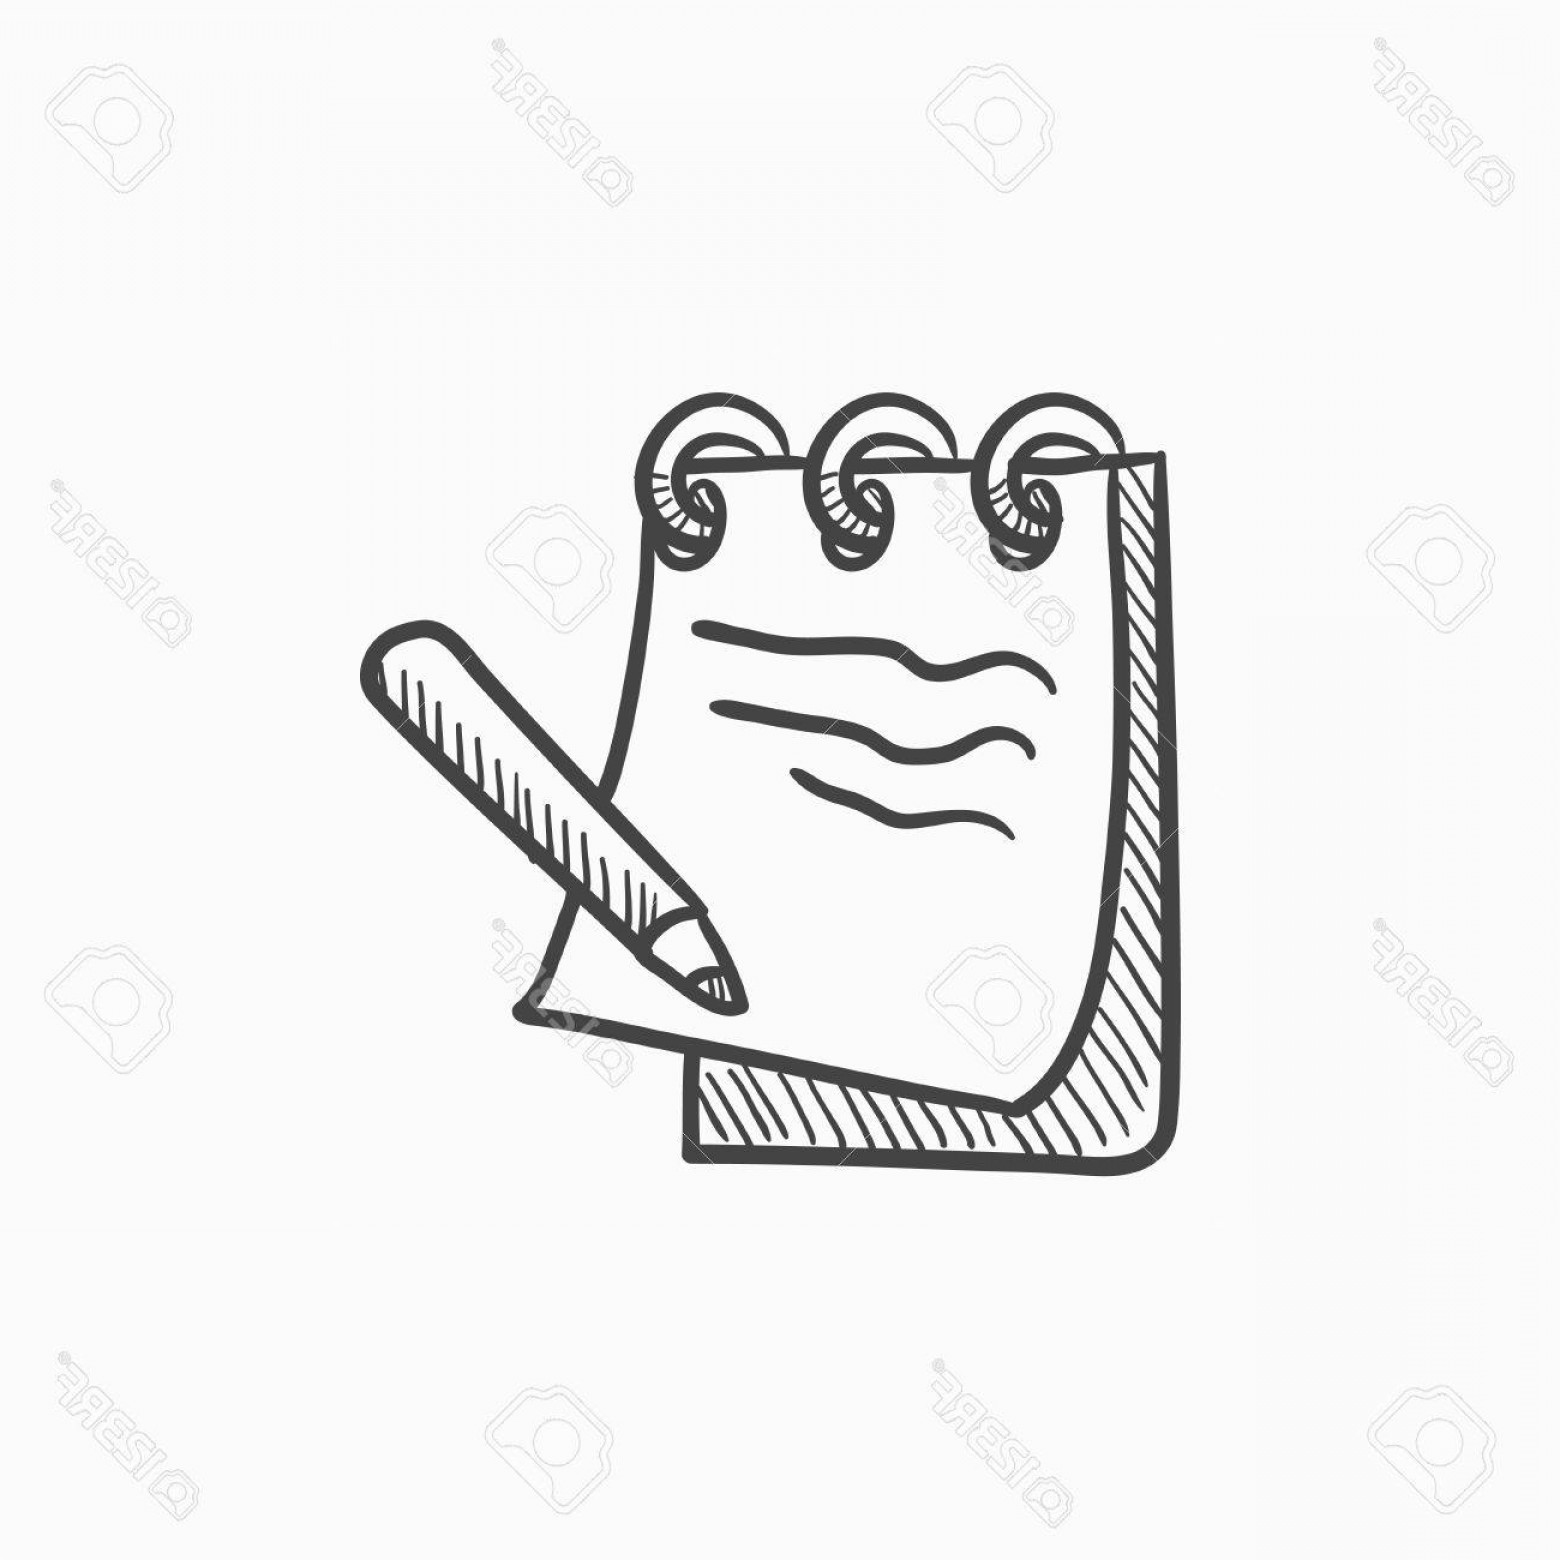 Notepad Writing Hand Vector: Photostock Vector Notepad With Pencil Vector Sketch Icon Isolated On Background Hand Drawn Notepad With Pencil Icon No